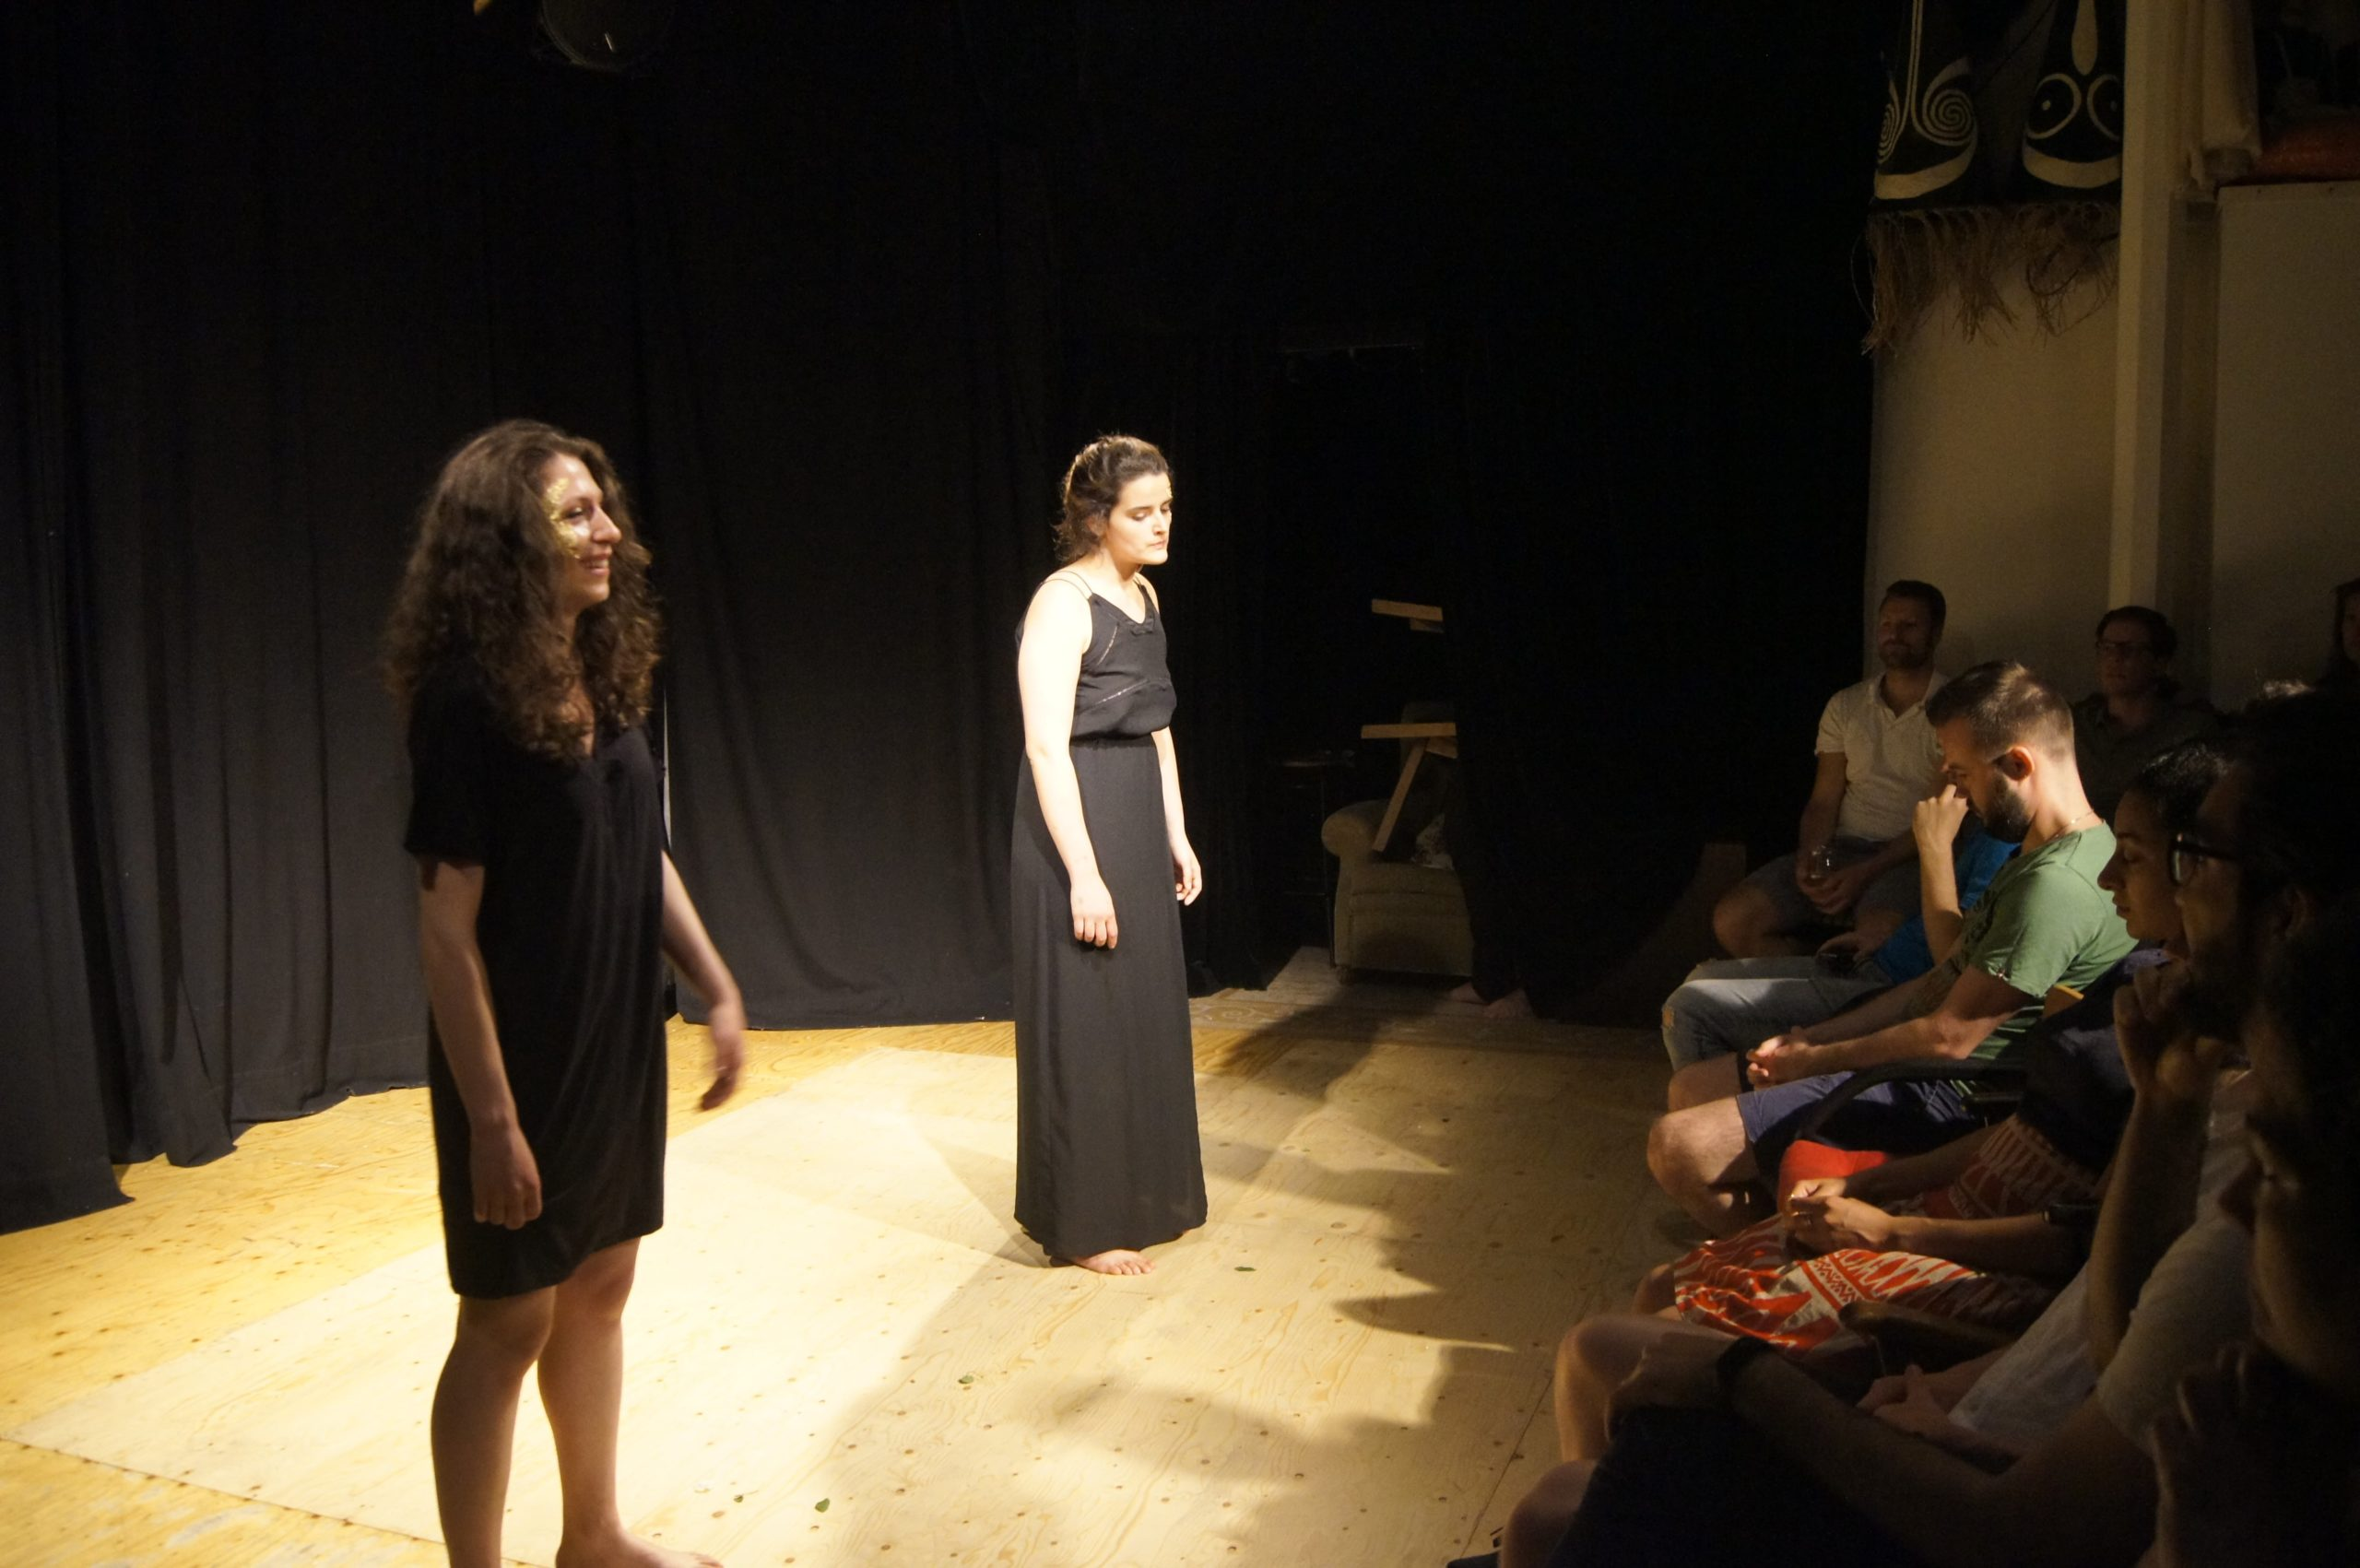 Theatre performance, two women on stage with black dresses, standing in front of audience. One laughs, the other one looks down.